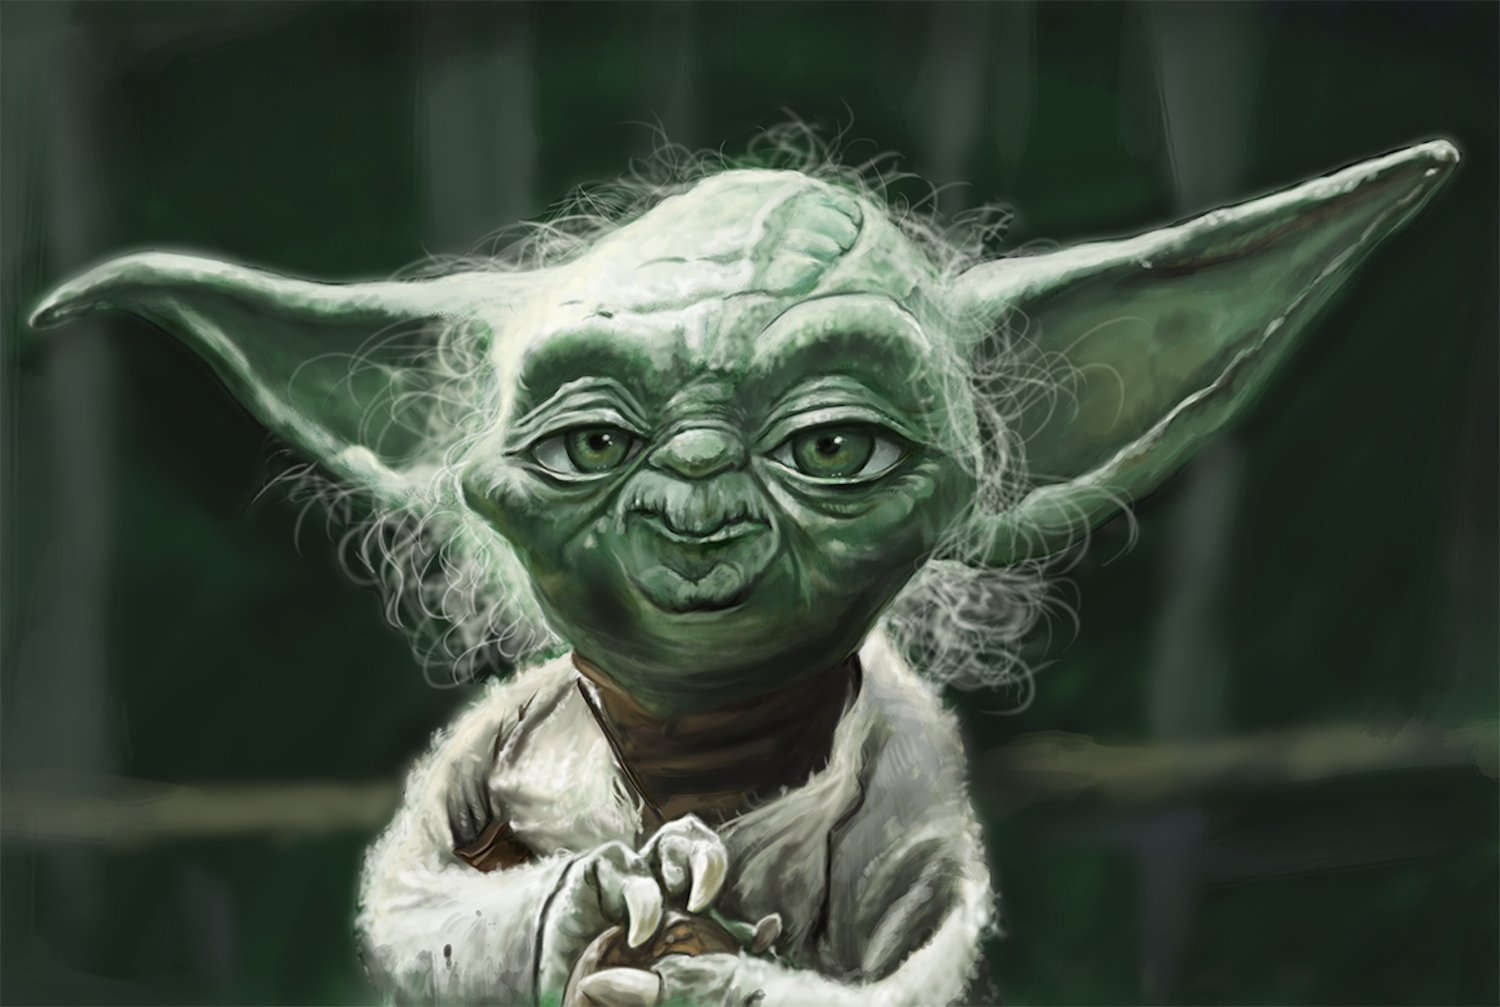 Star Wars Yoda ''Jedi Master'' Caricature Limited Edition (1 of 20) Giclee on Canvas Artwork: Signed, Numbered, Personalized Certificate of Authenticity, Ready to Hang, Home & Office Wall Decor, Gift